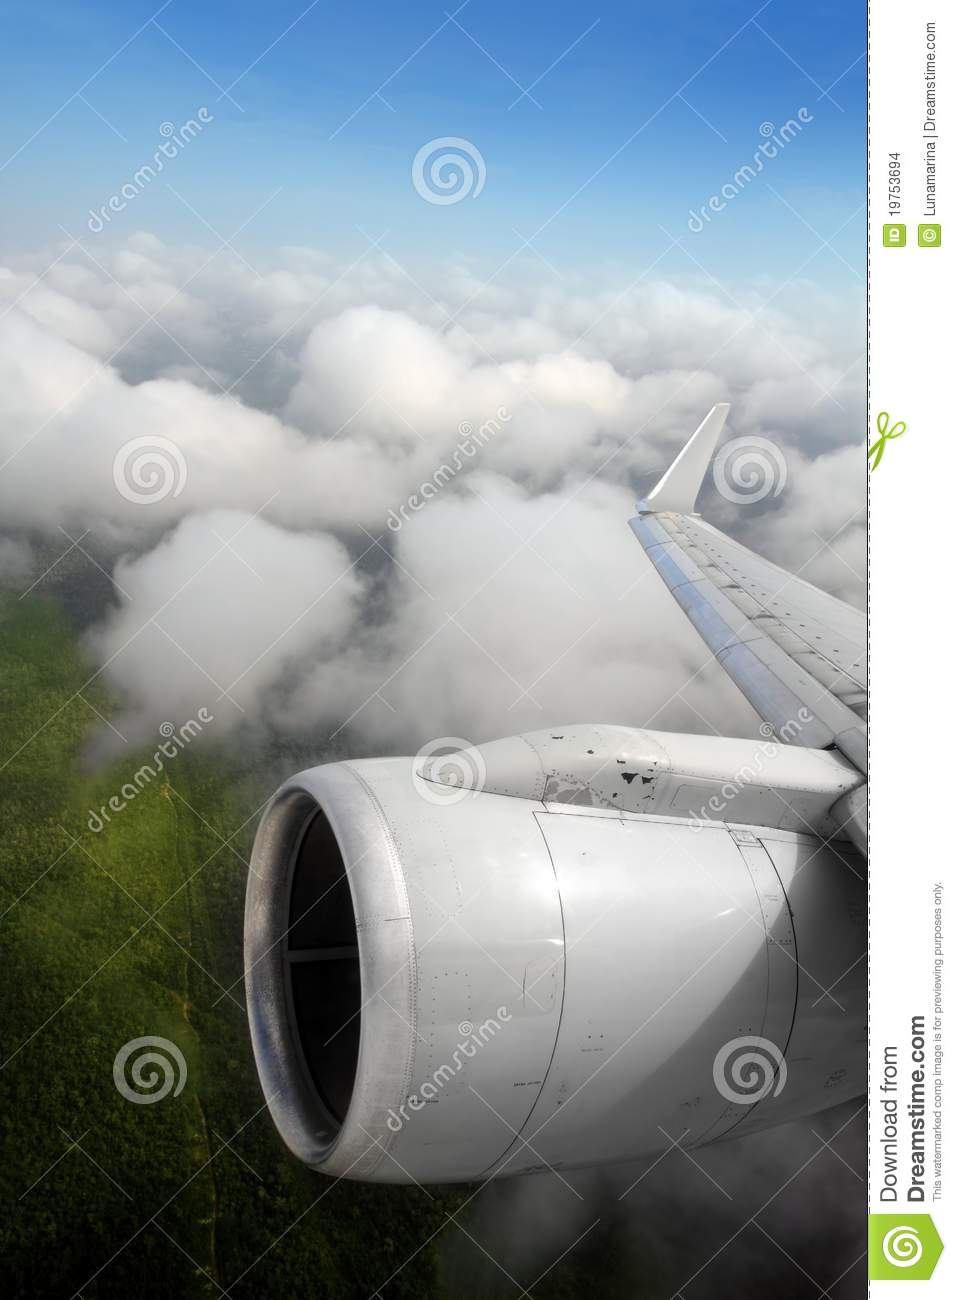 Download Airplane Wing Aircraft Turbine Flying Stock Photo - Image of nature, beauty: 19753694